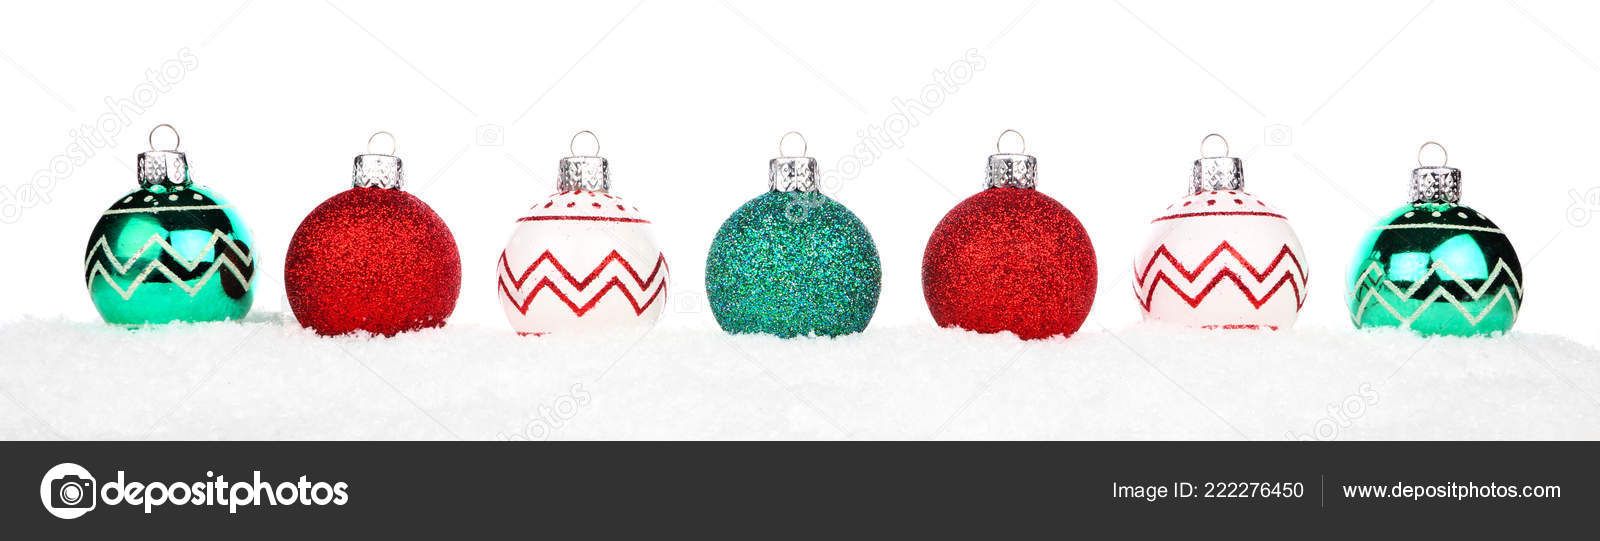 Christmas Border Red Green White Ornaments Snow Isolated White